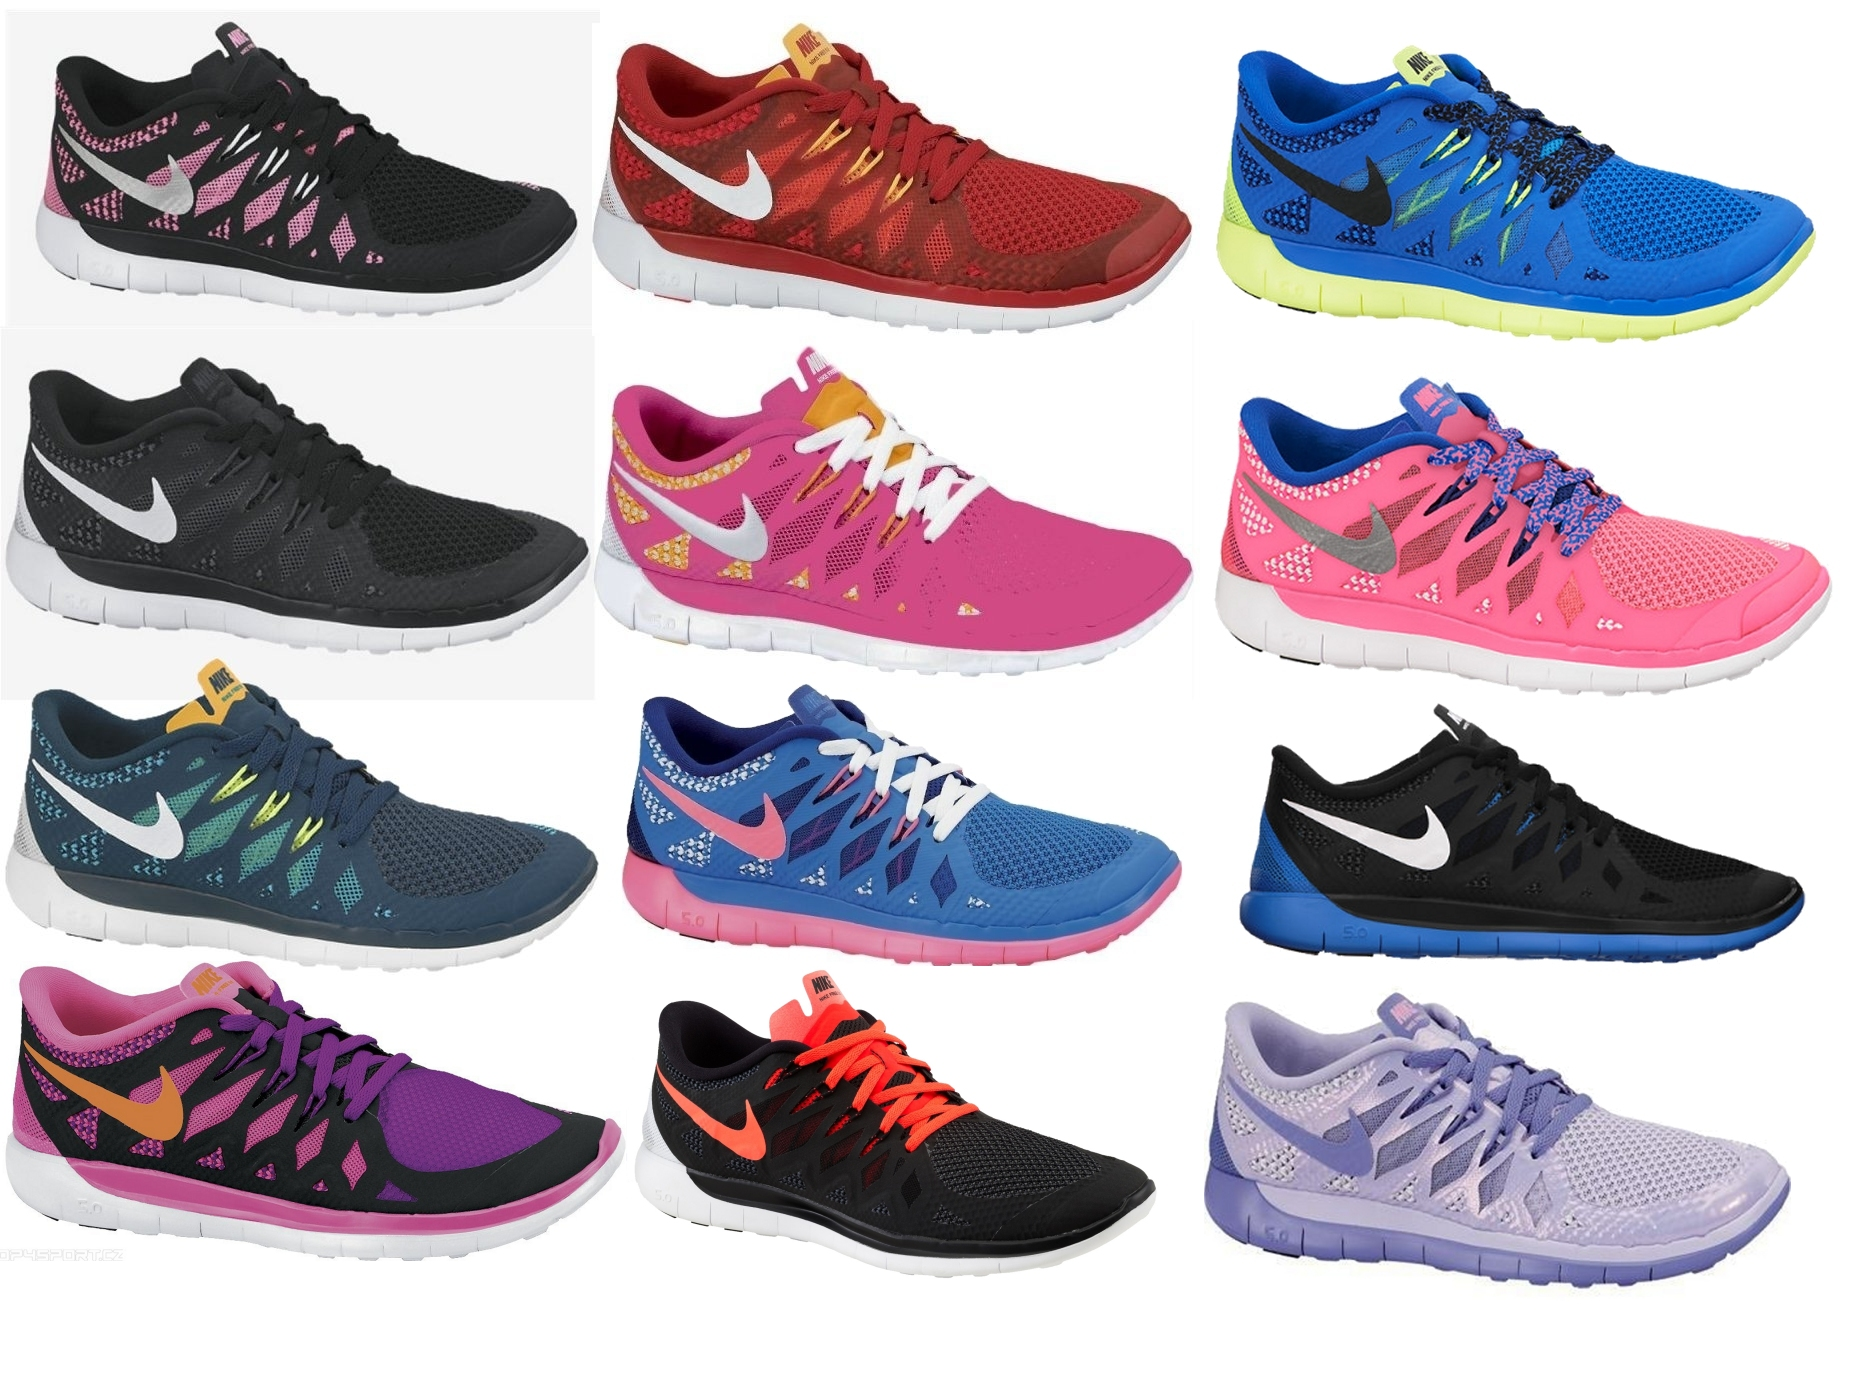 alle nike free runs nike chemises de golf gros. Black Bedroom Furniture Sets. Home Design Ideas